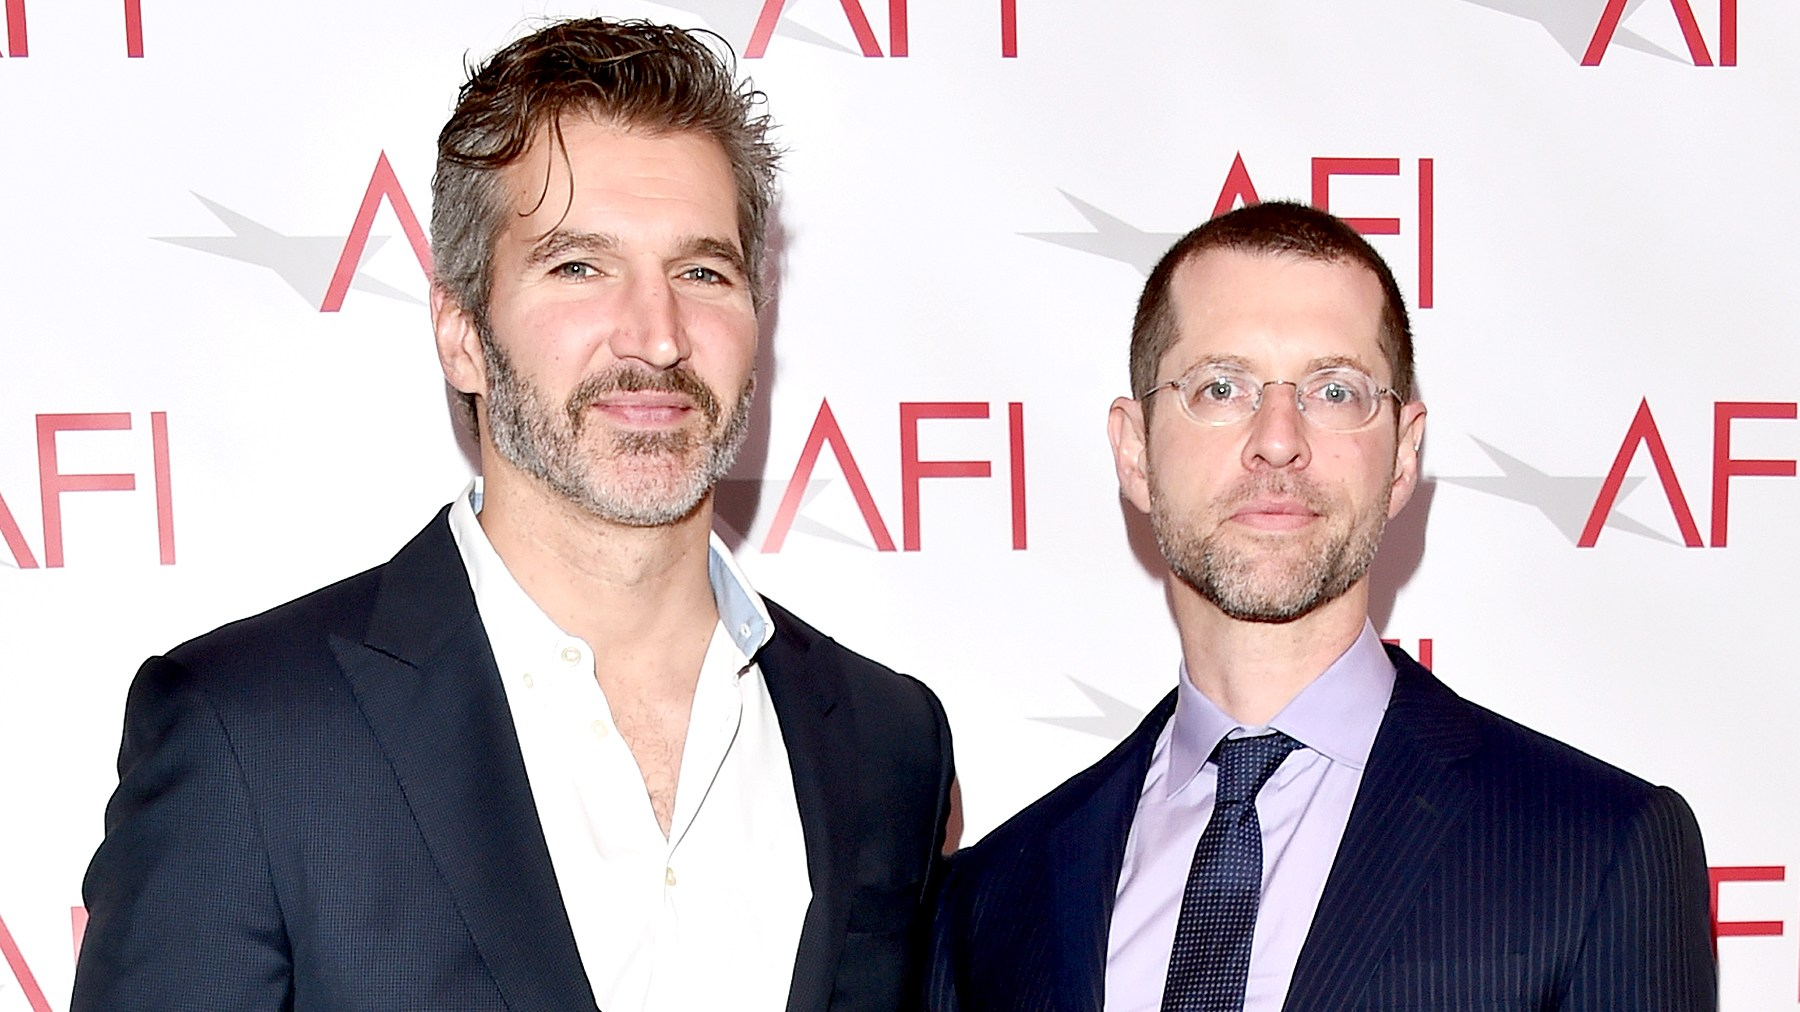 David Benioff and D. B. Weiss attend the 17th annual AFI Awards at Four Seasons Los Angeles at Beverly Hills on January 6, 2017 in Los Angeles, California.